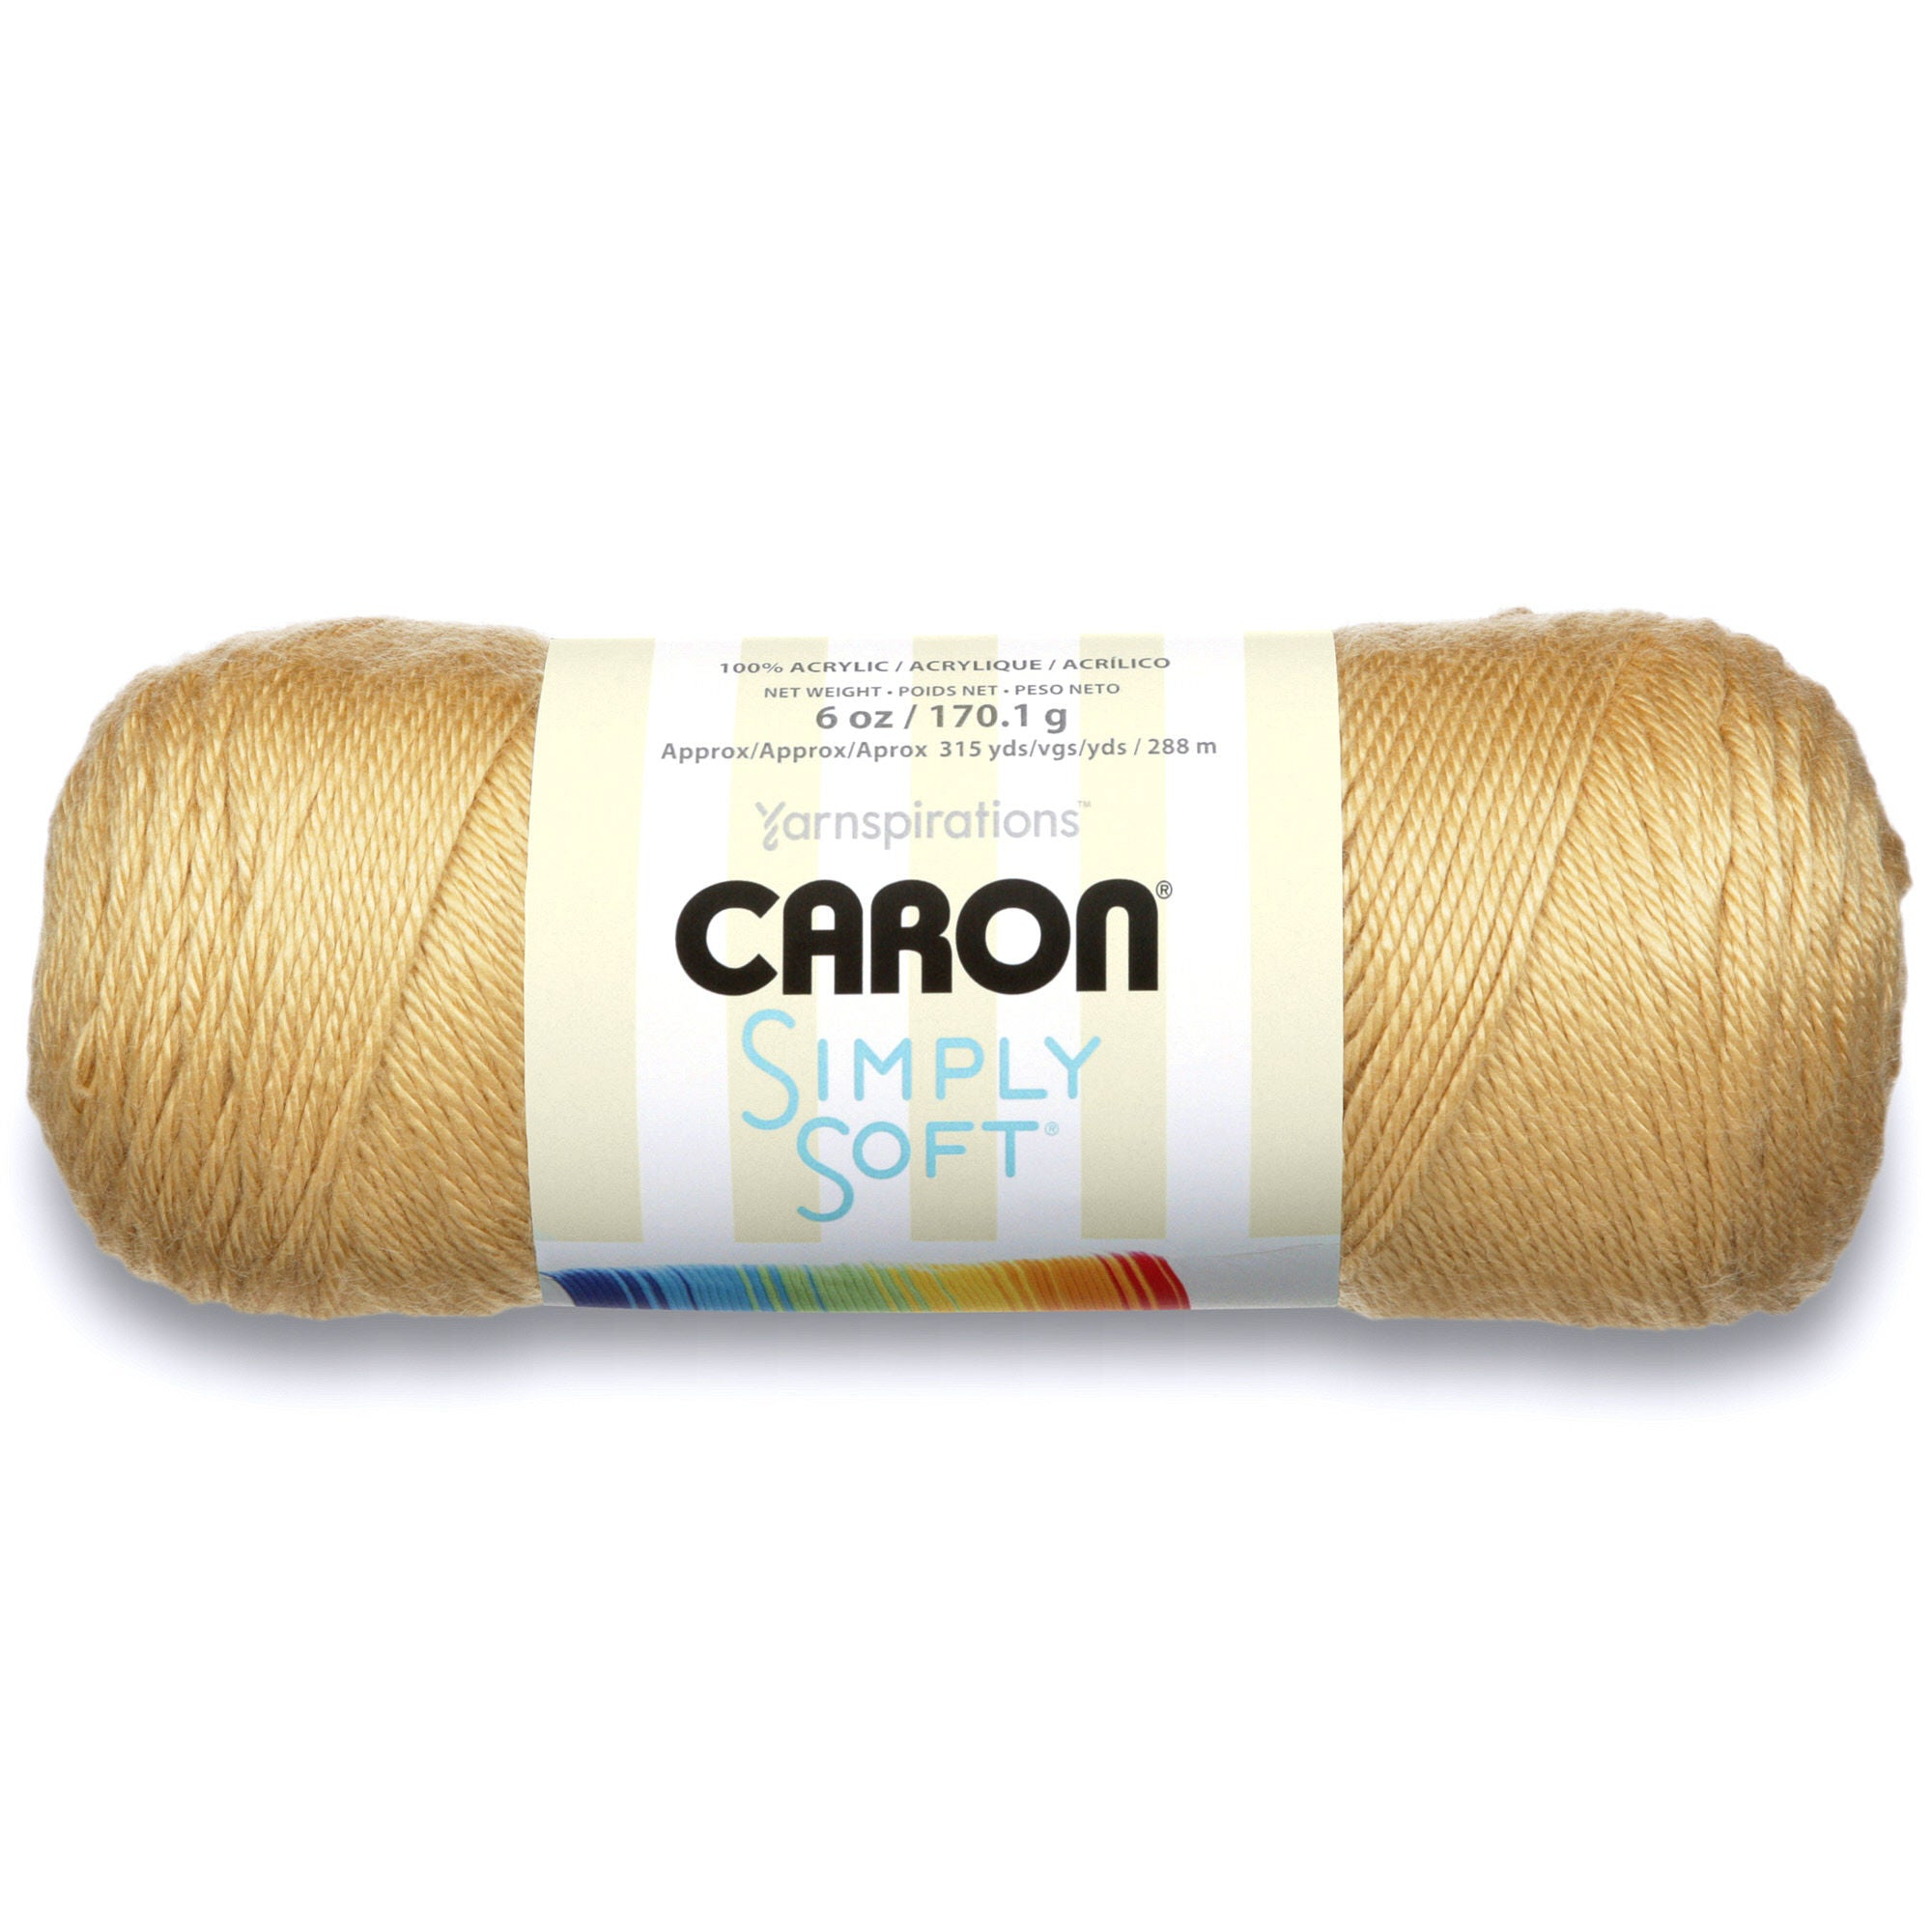 CARON SIMPLY SOFT COLLECTION